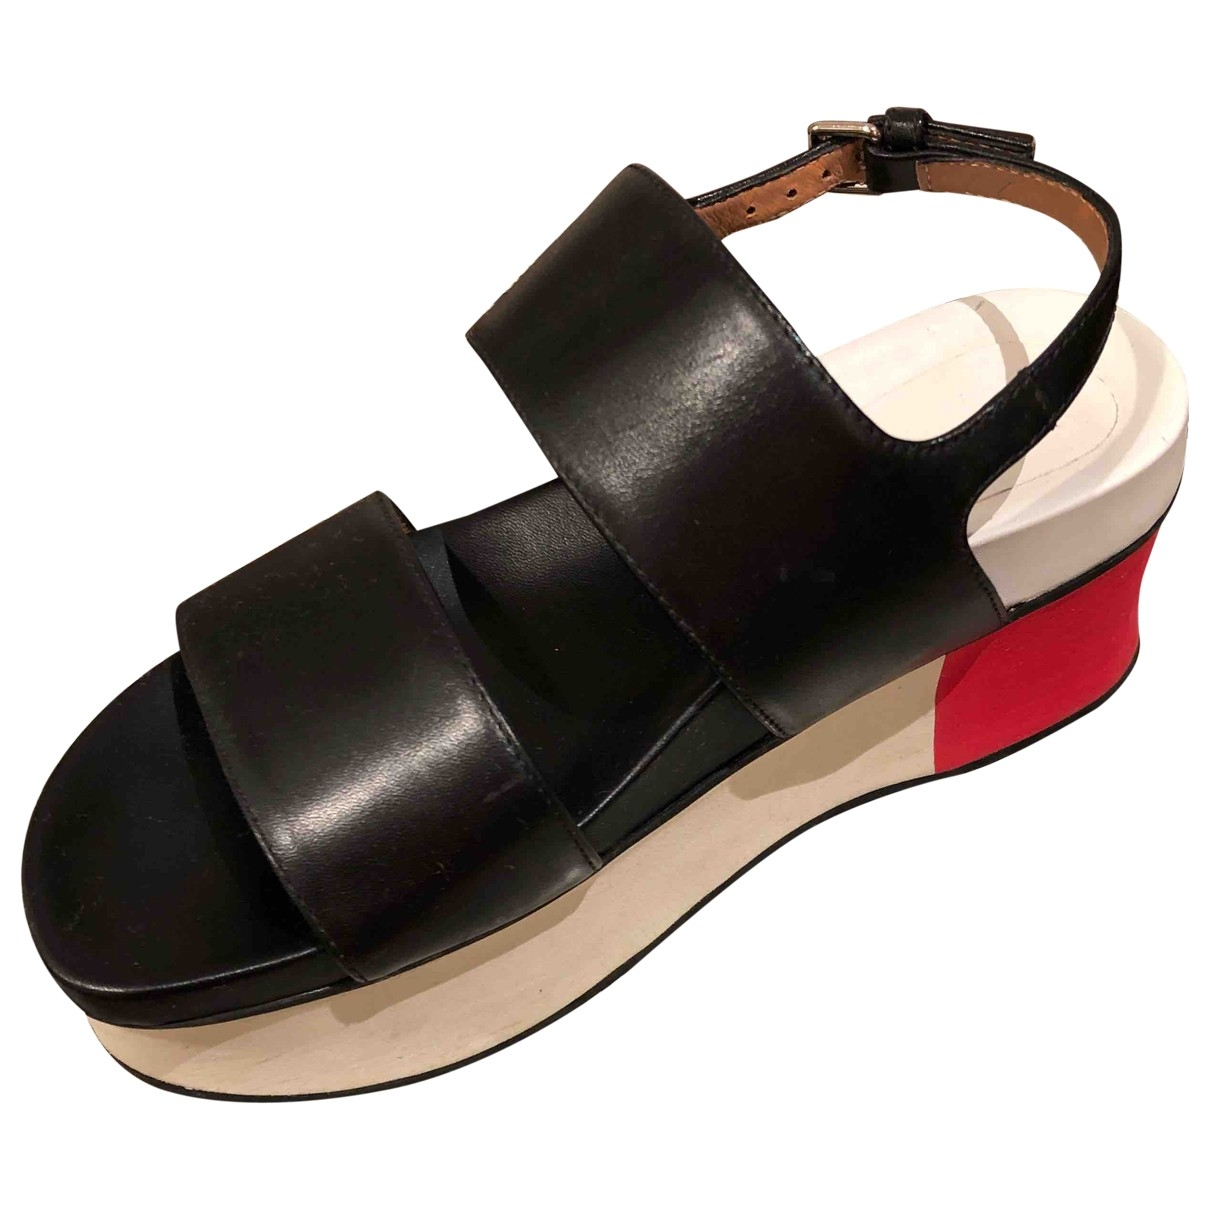 Marni \N Black Leather Sandals for Women 35 EU